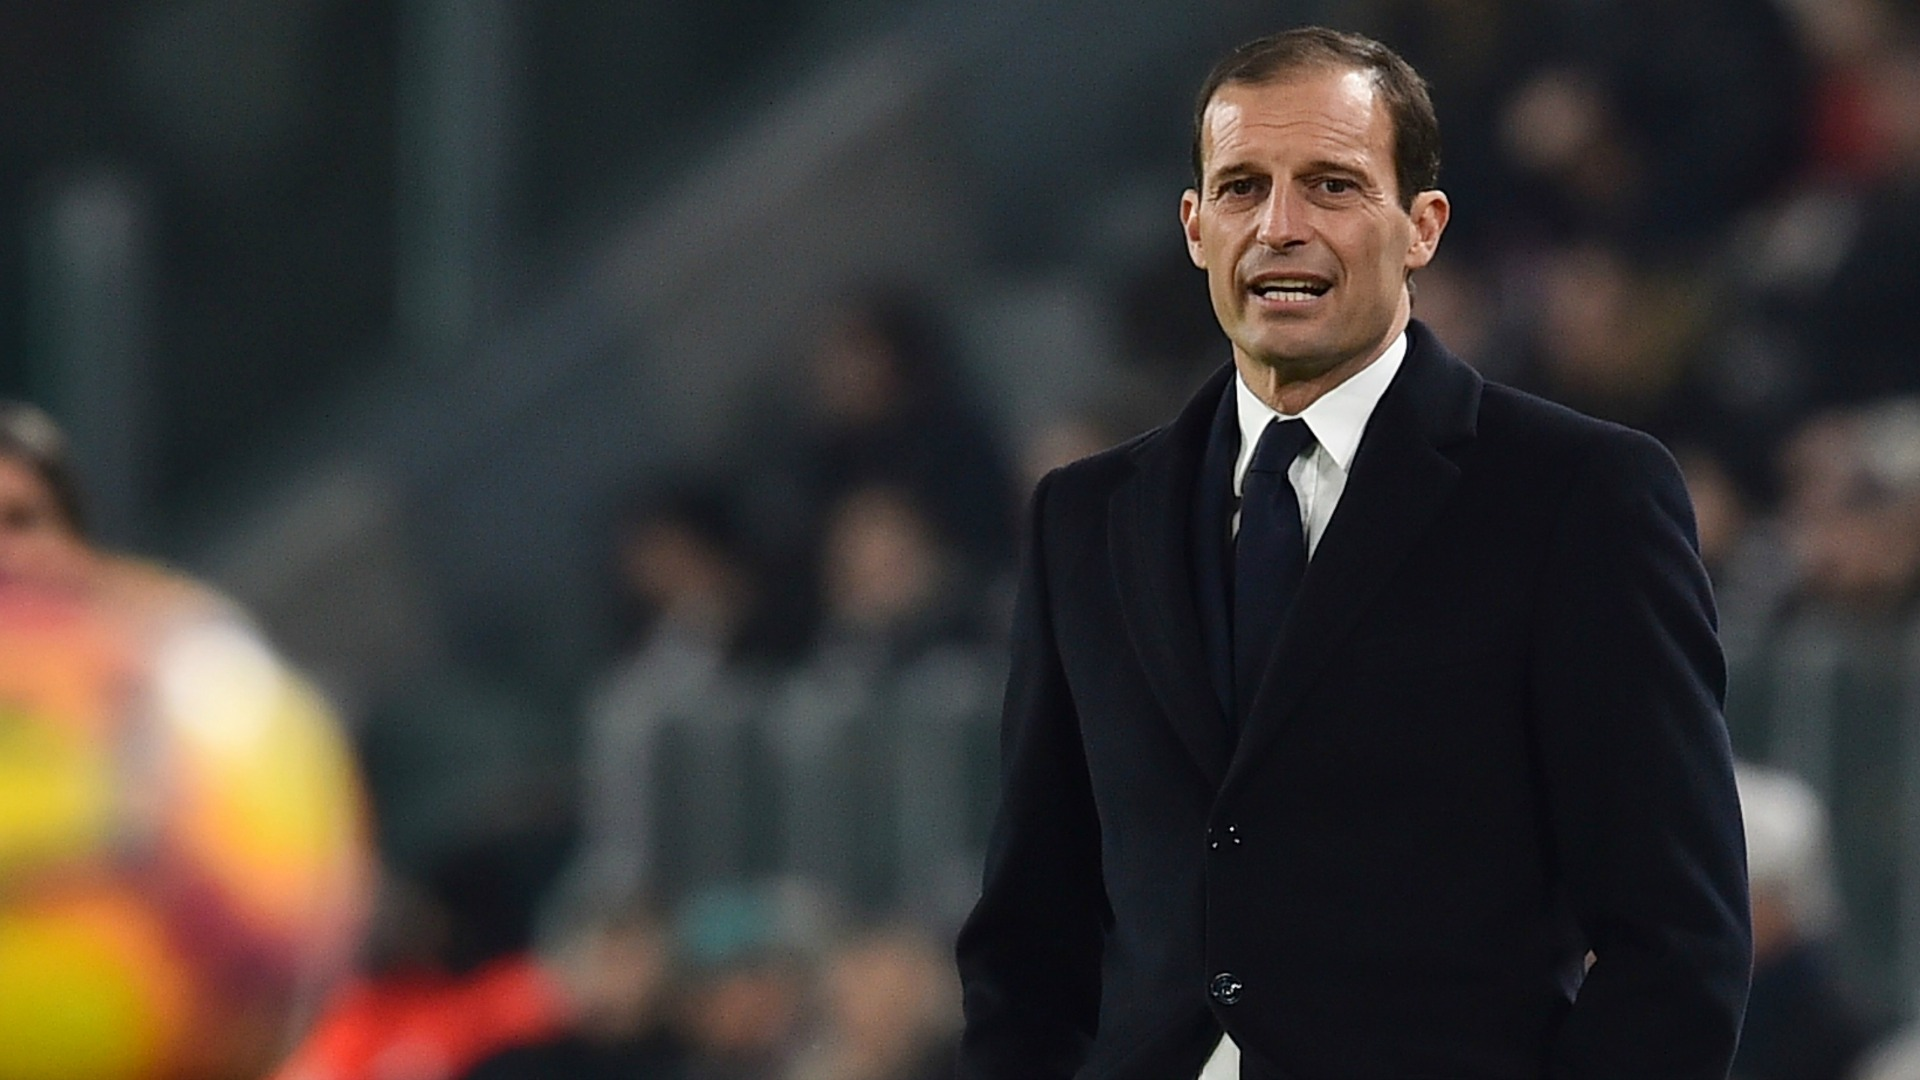 allegri juventus - photo #1